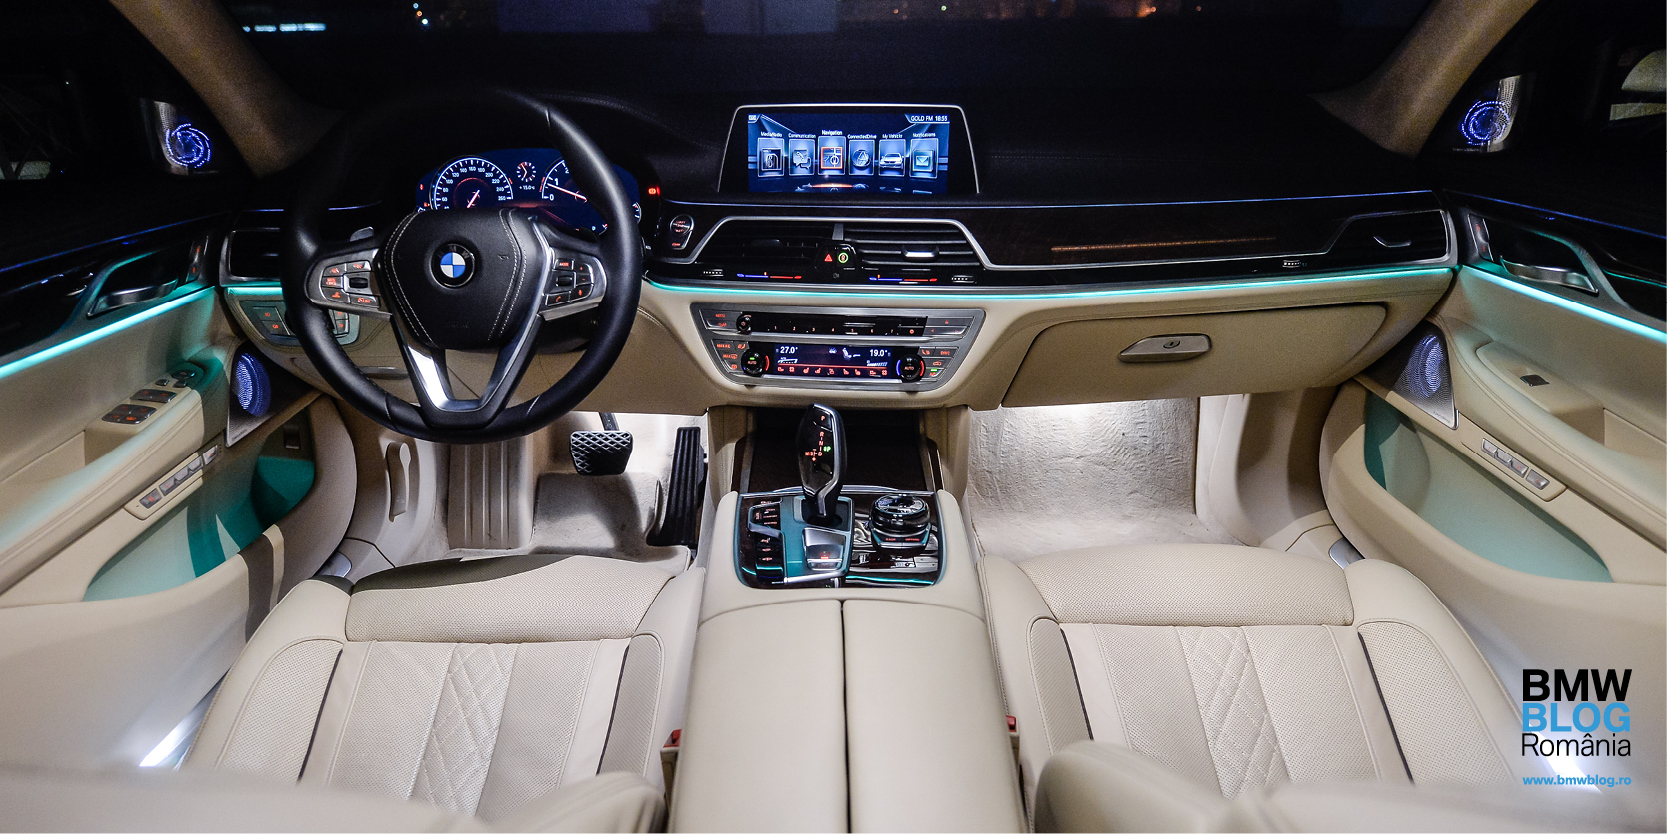 Luxul digital de la bordul noului BMW Seria 7 (FT)